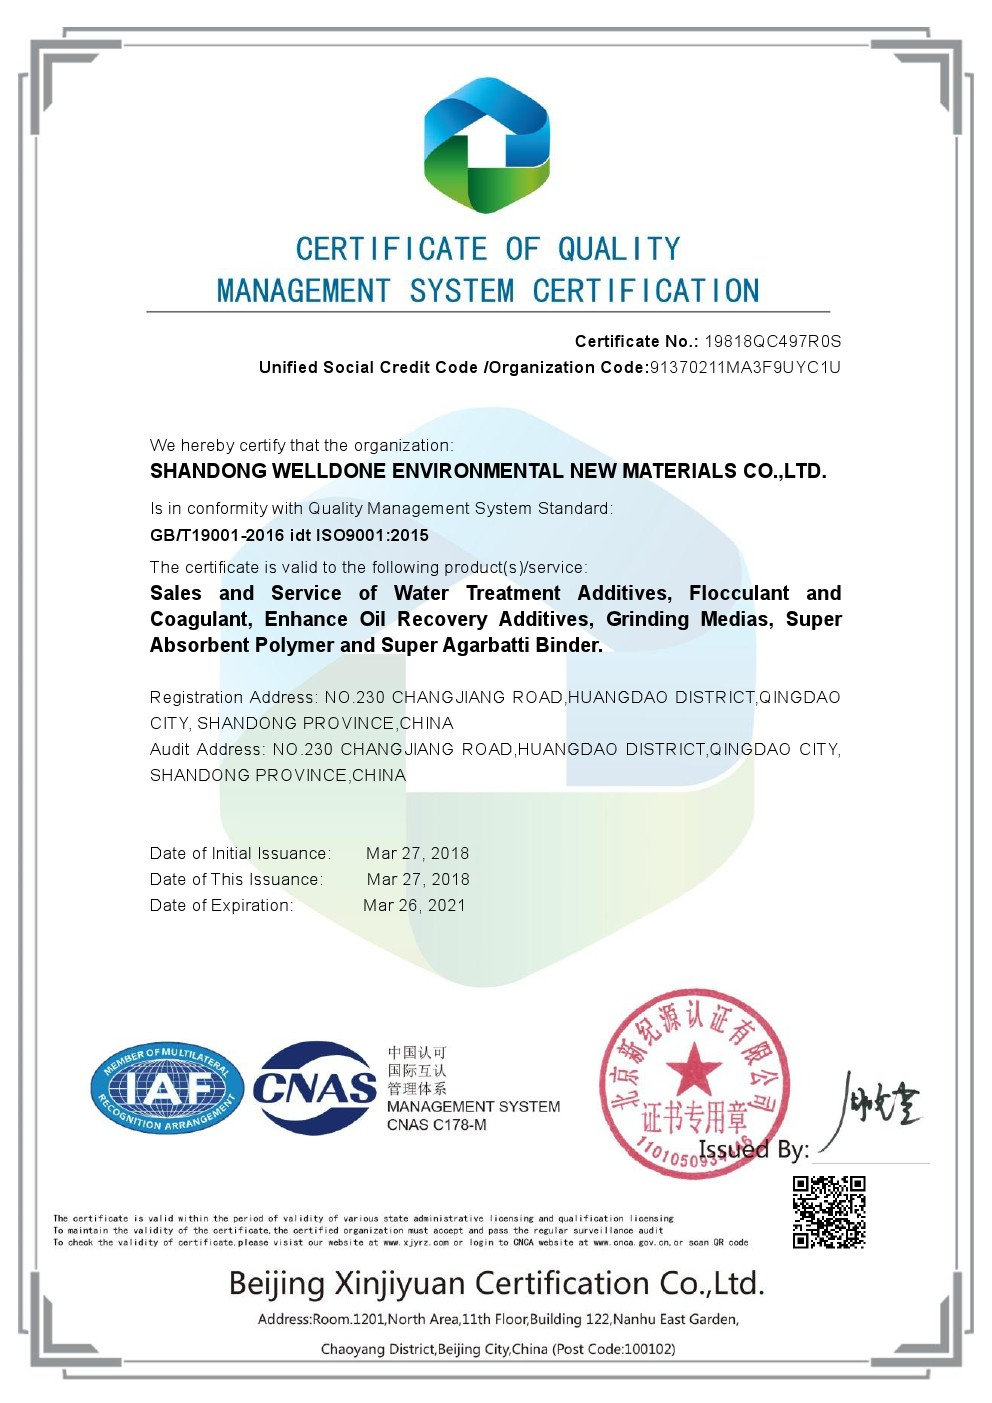 ISO9001:2015 CERTIFICATE OF QUALITY MANAGEMENT SYSTEM CERTIFICATION